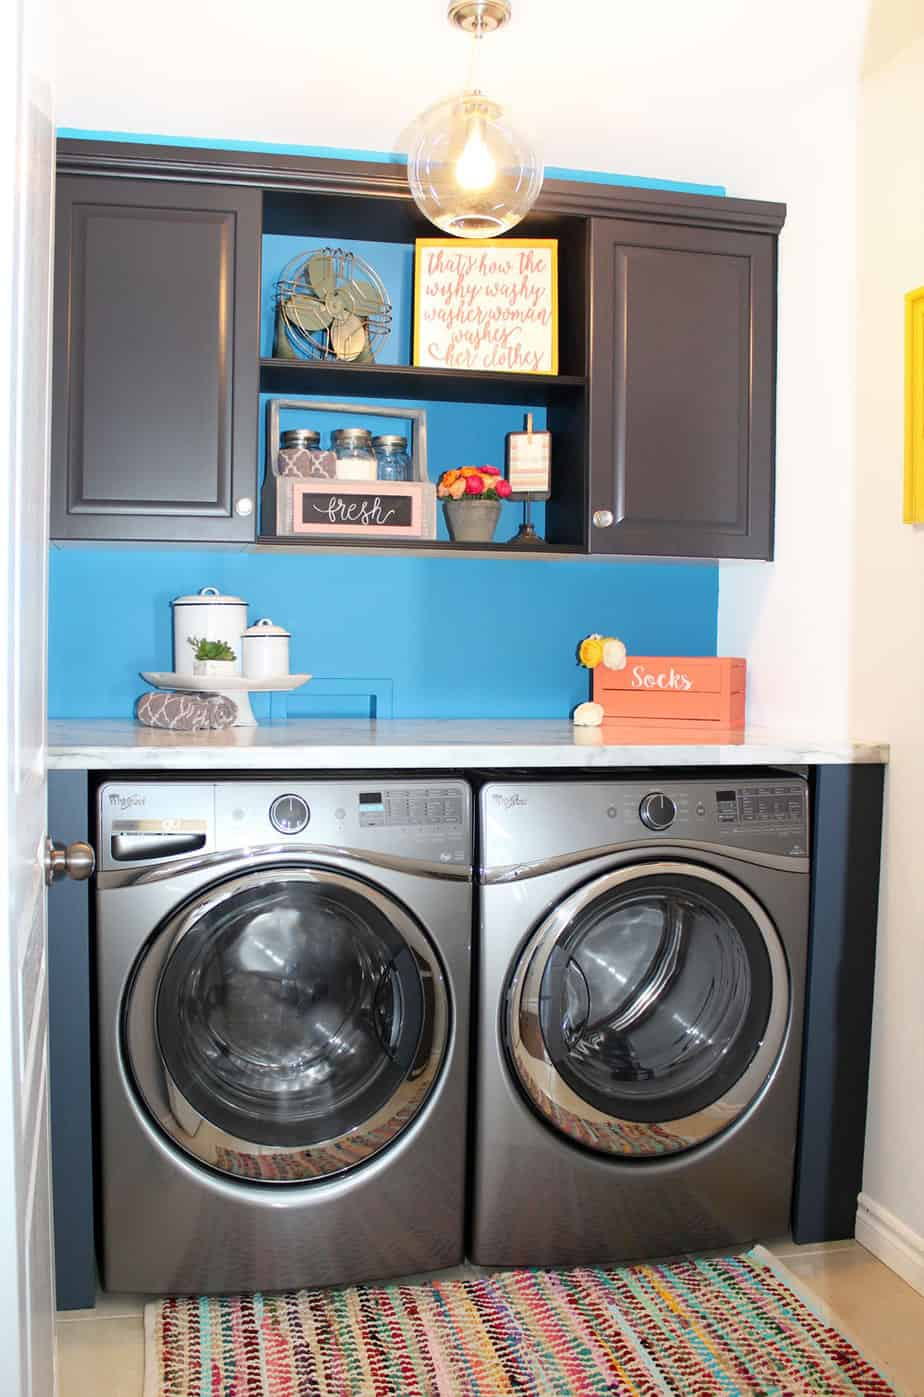 The big reveal simple laundry room ideas fynes designs - Laundry room design ideas ...